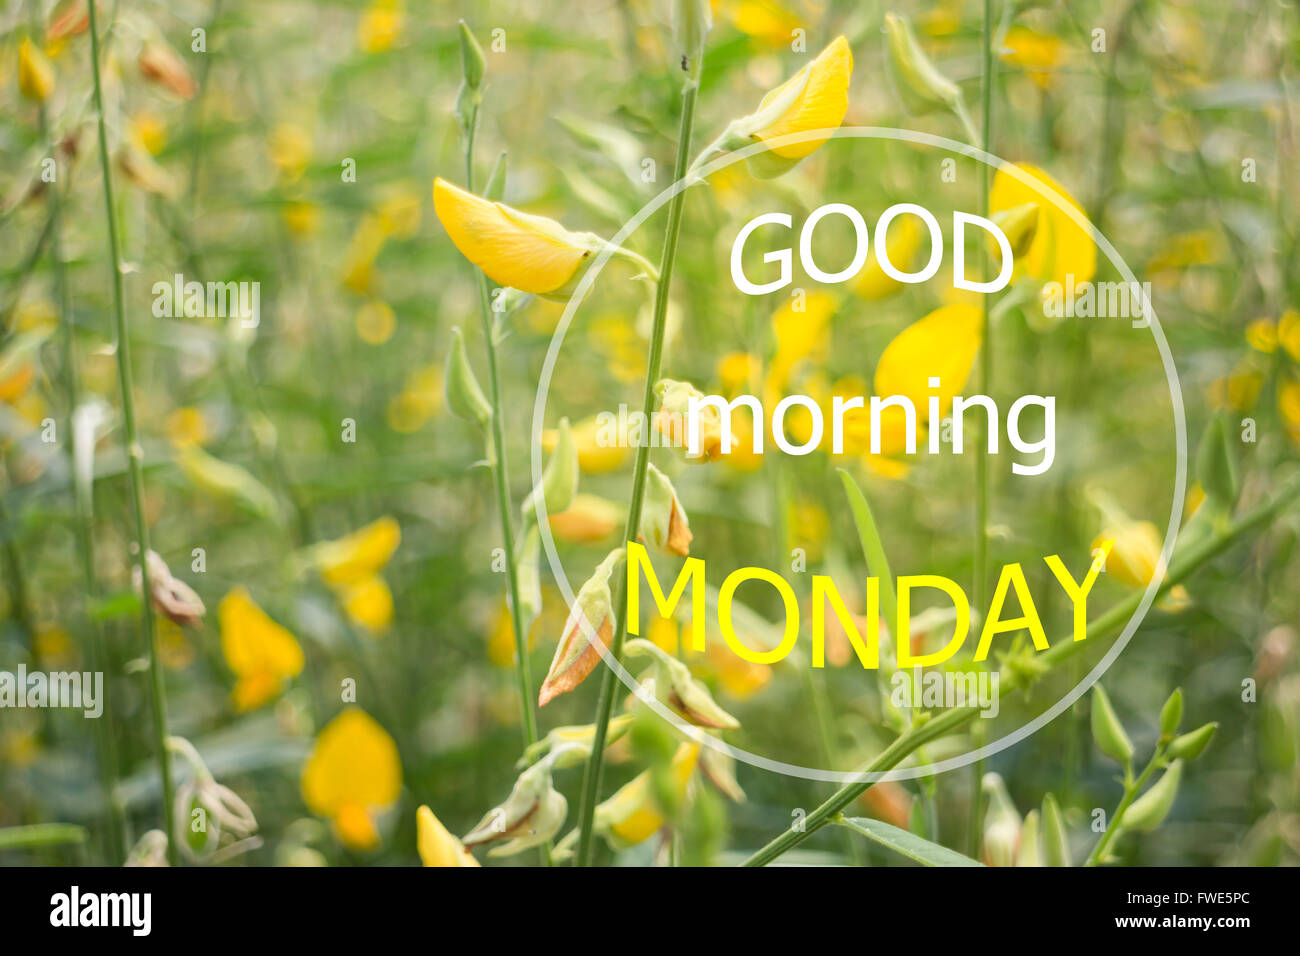 Lightbox Quotes Good Morning Monday Quote Design Poster, Stock Photo Stock